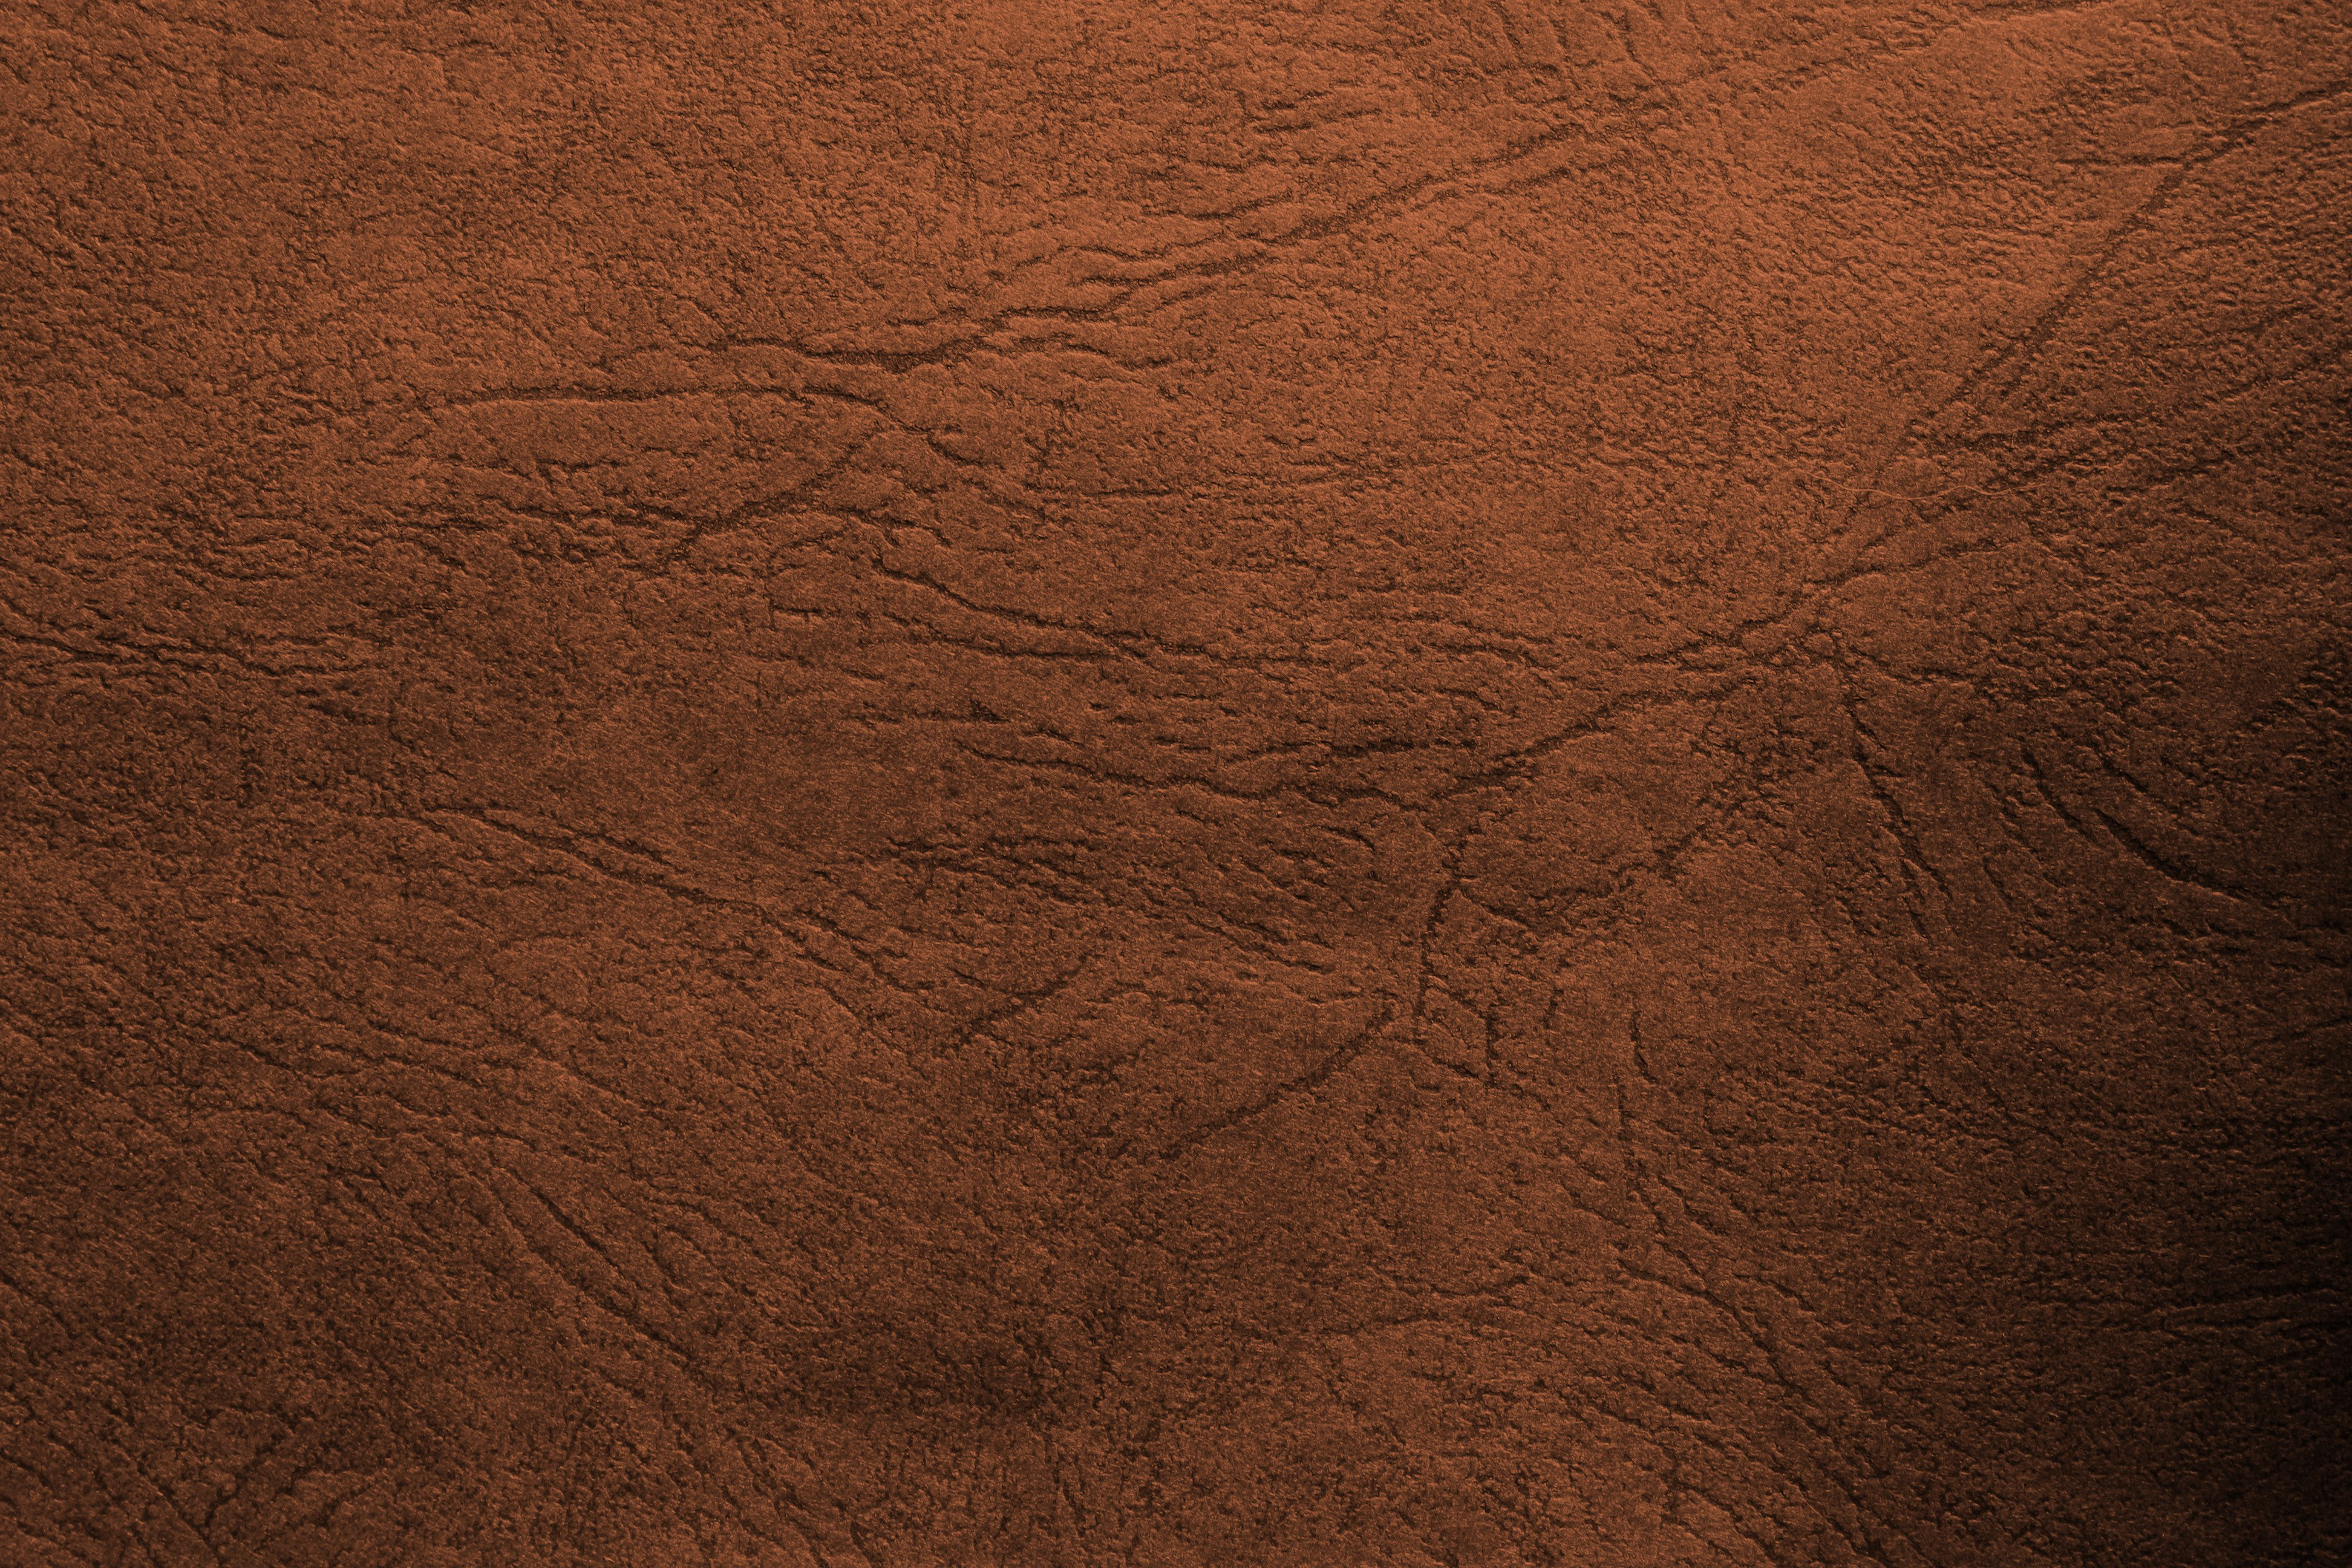 Brown Leather Texture Picture Free Photograph Photos